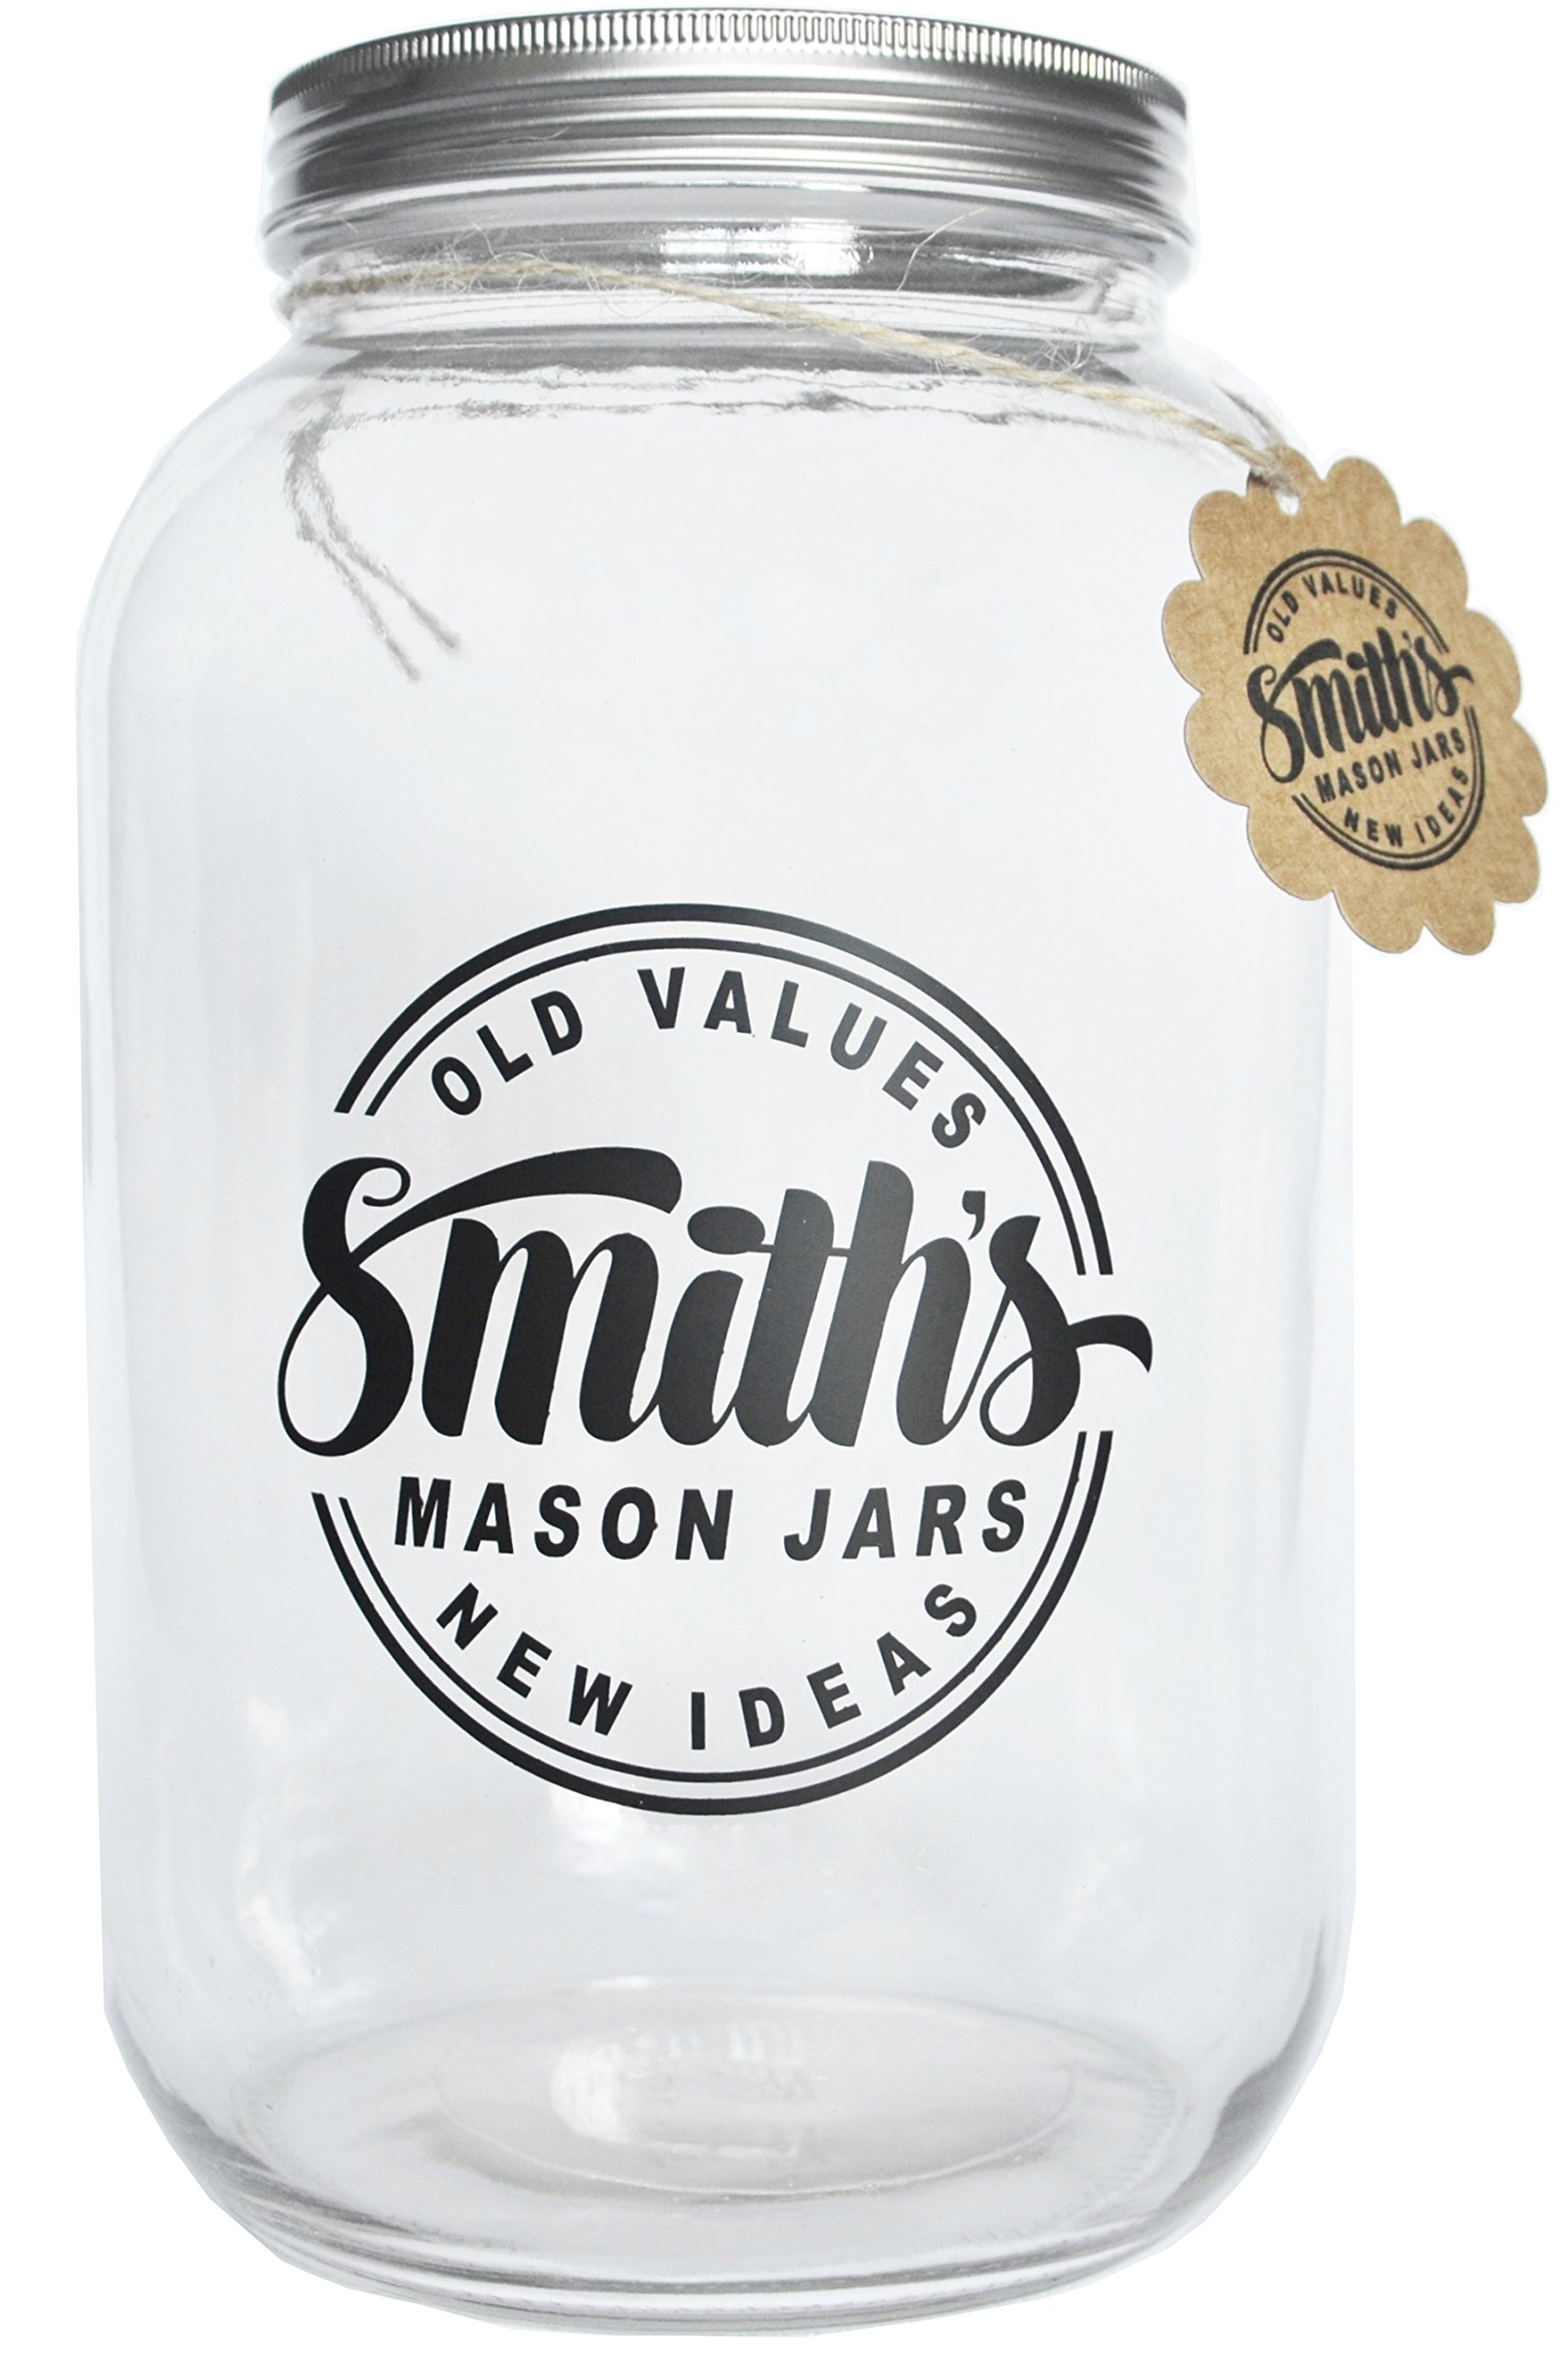 Smith's Mason Jars 1 Gallon Glass Jar with Plastic and Metal Lids - Ideal for Kumbacha, Kitchen & Dining, Brewing & Fermentation Fermenters, and Canning Jars